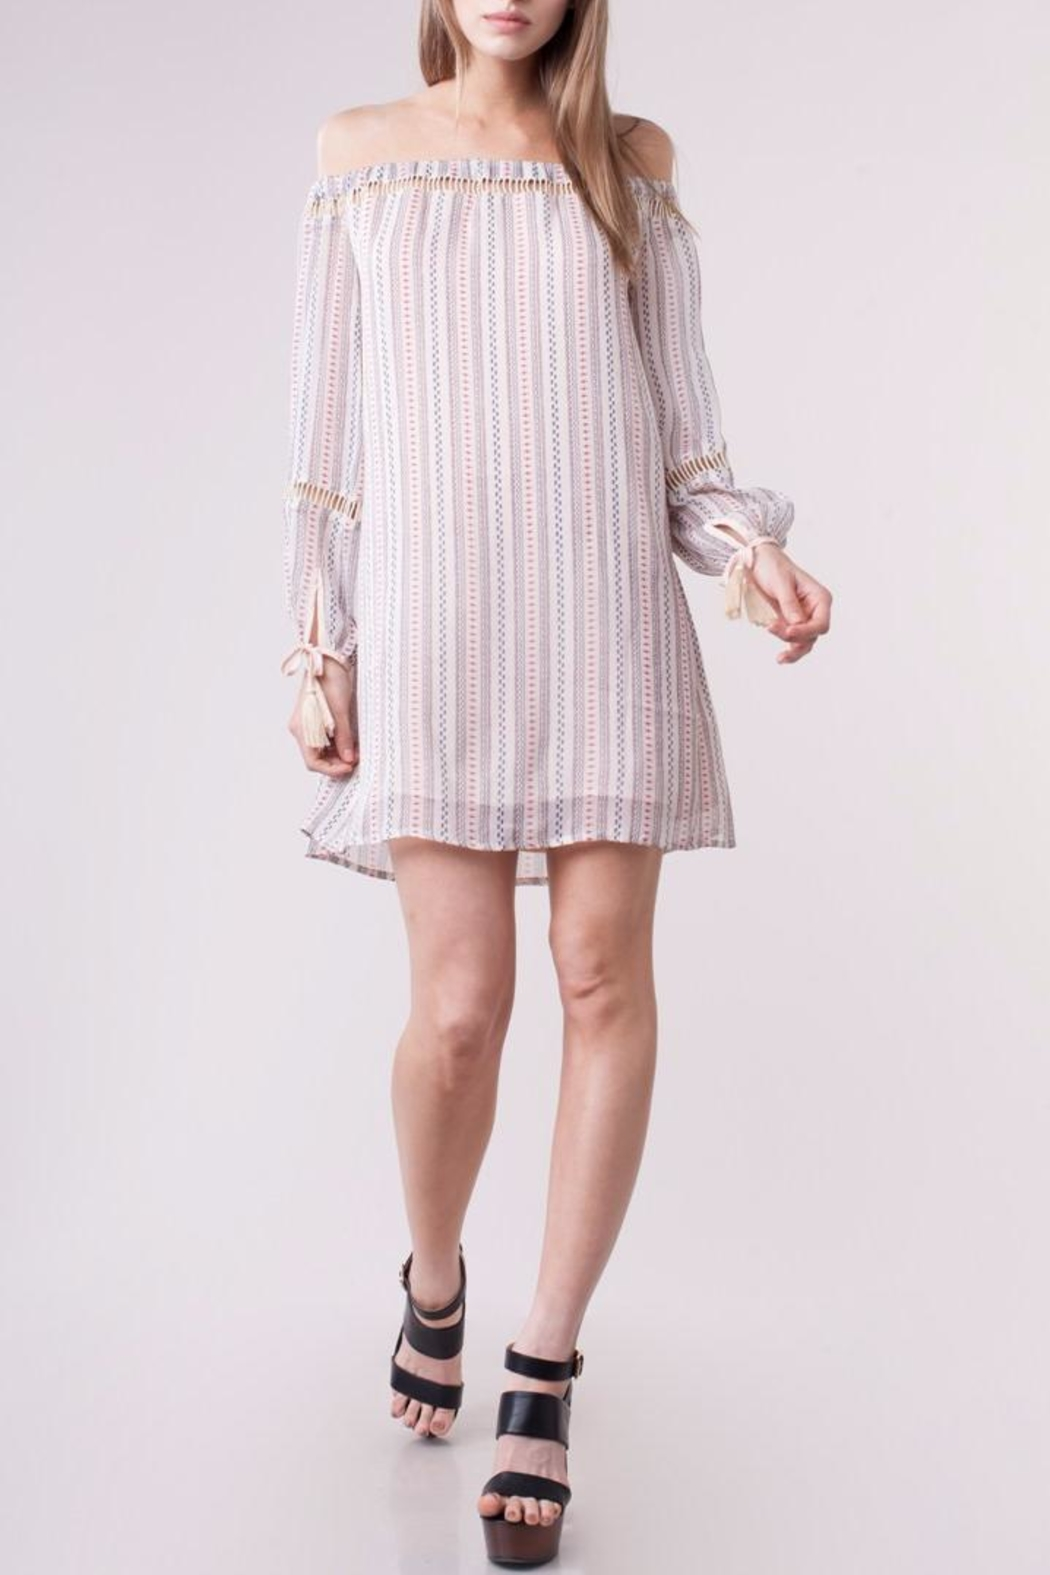 People Outfitter Branford Dress - Main Image